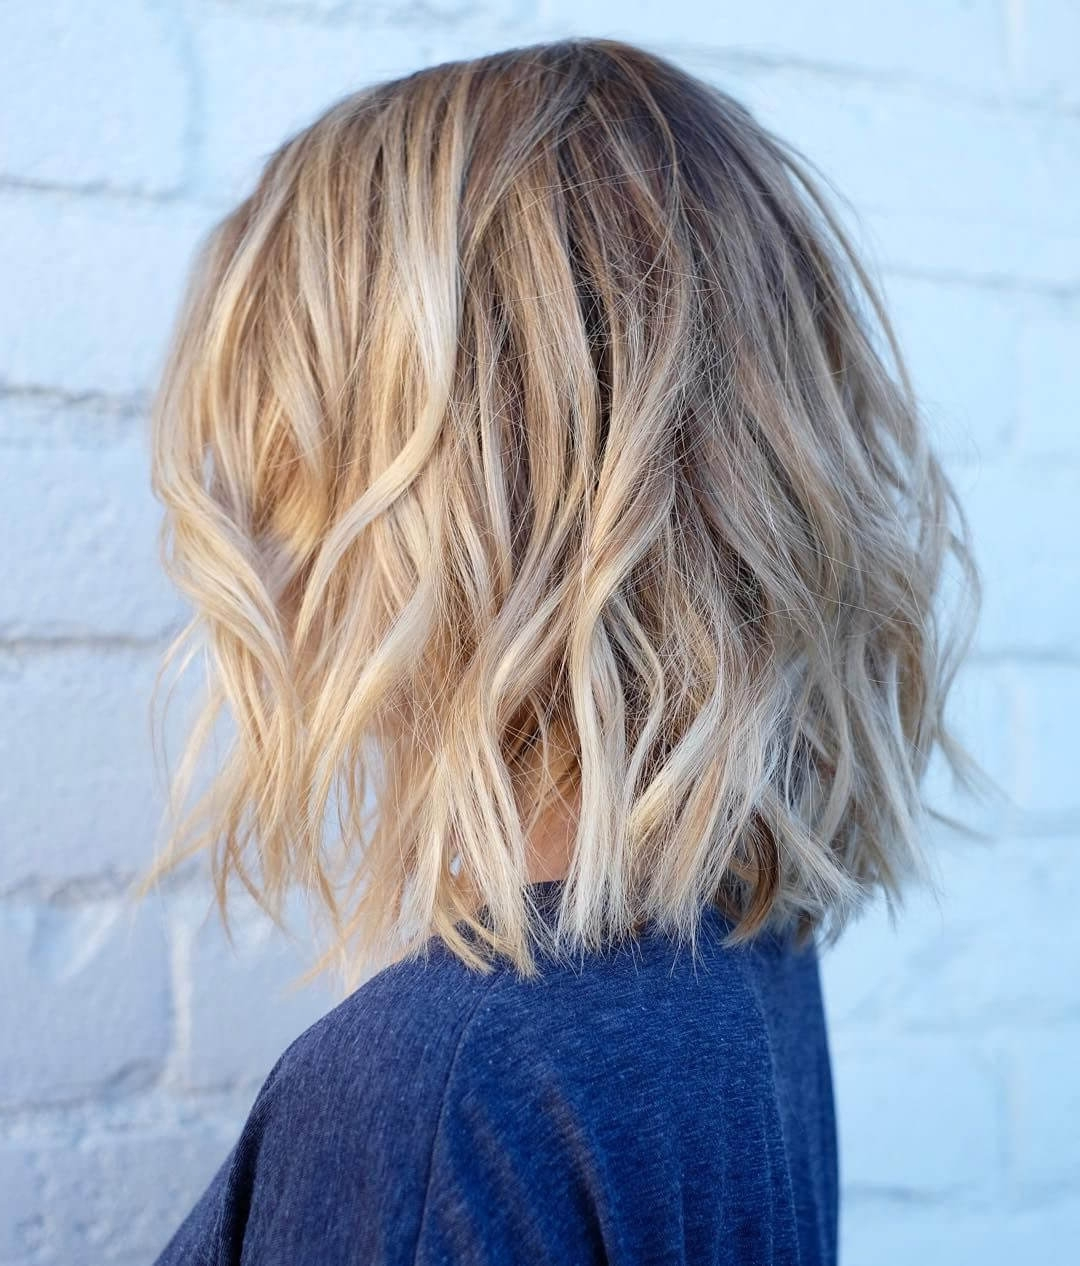 Trendy Straight Sandy Blonde Layers For 50 Fresh Short Blonde Hair Ideas To Update Your Style In  (View 19 of 20)